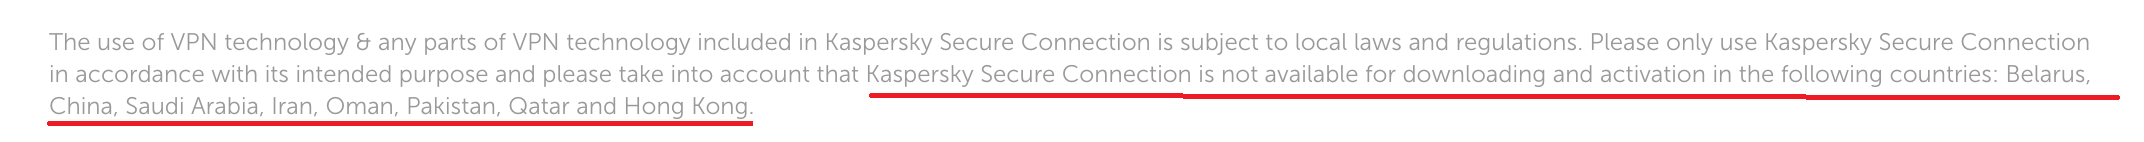 Kaspersky Secure Unsupported countires